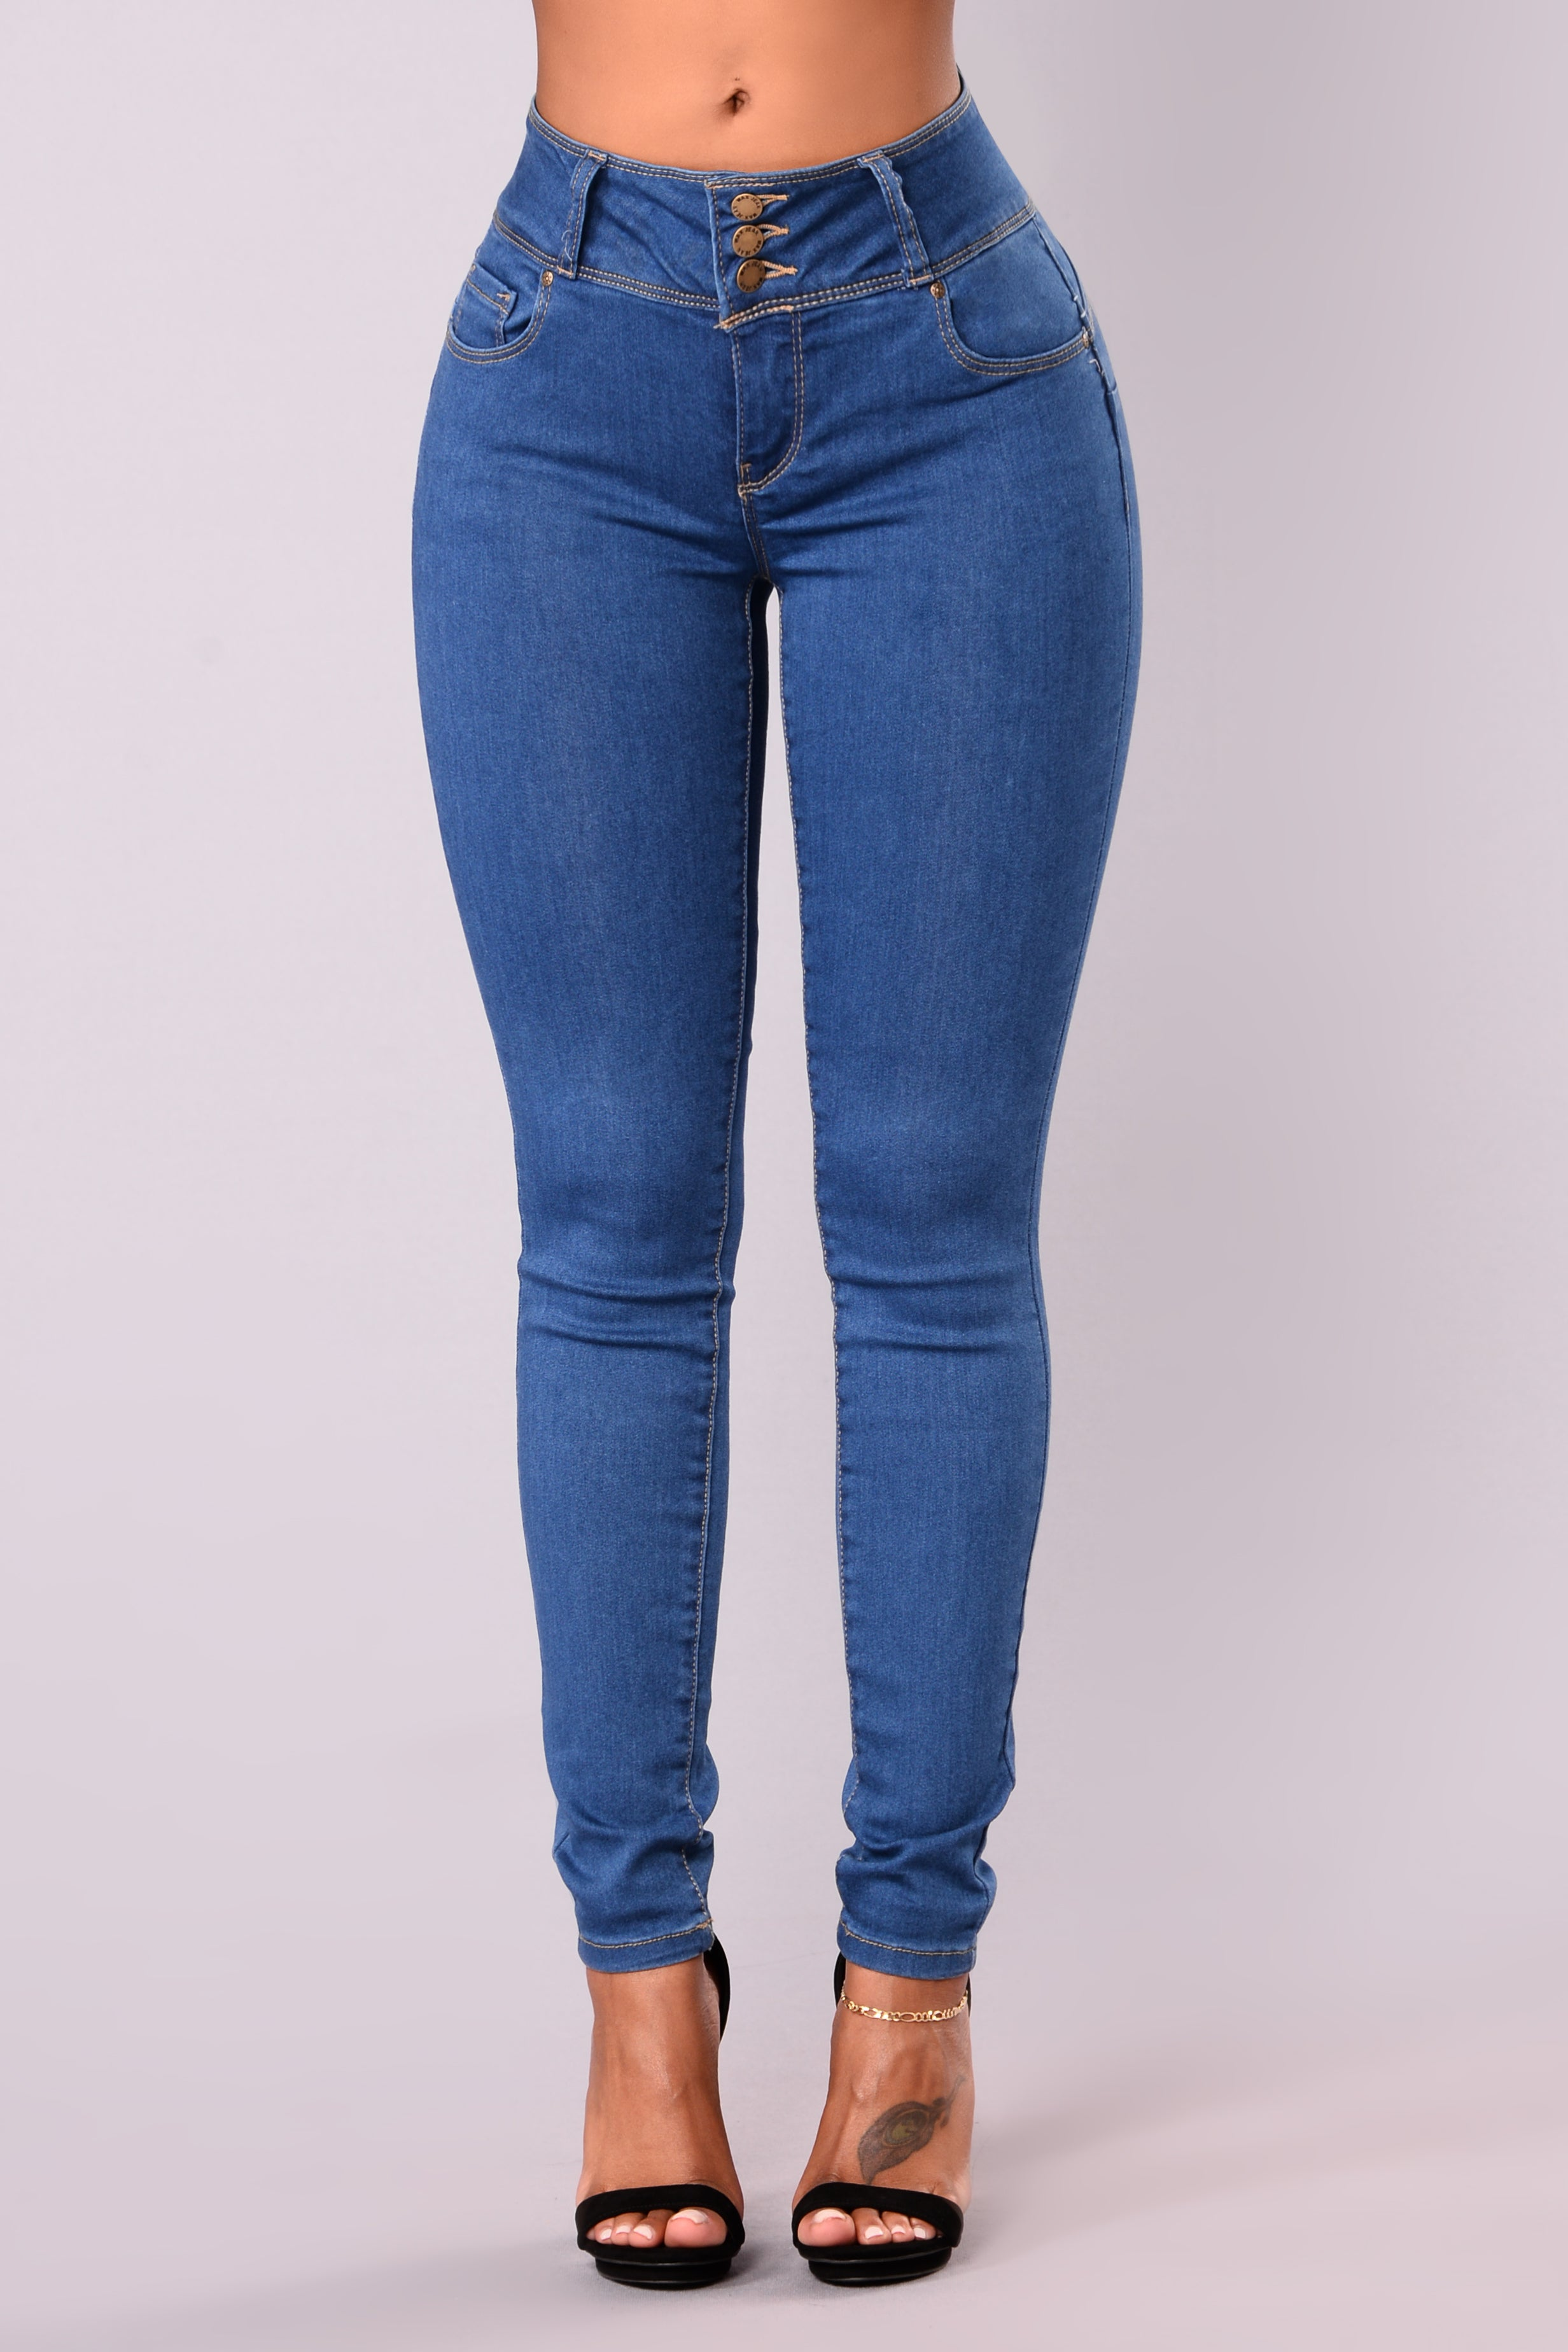 Round Of Applause Booty Shaped Jeans Medium